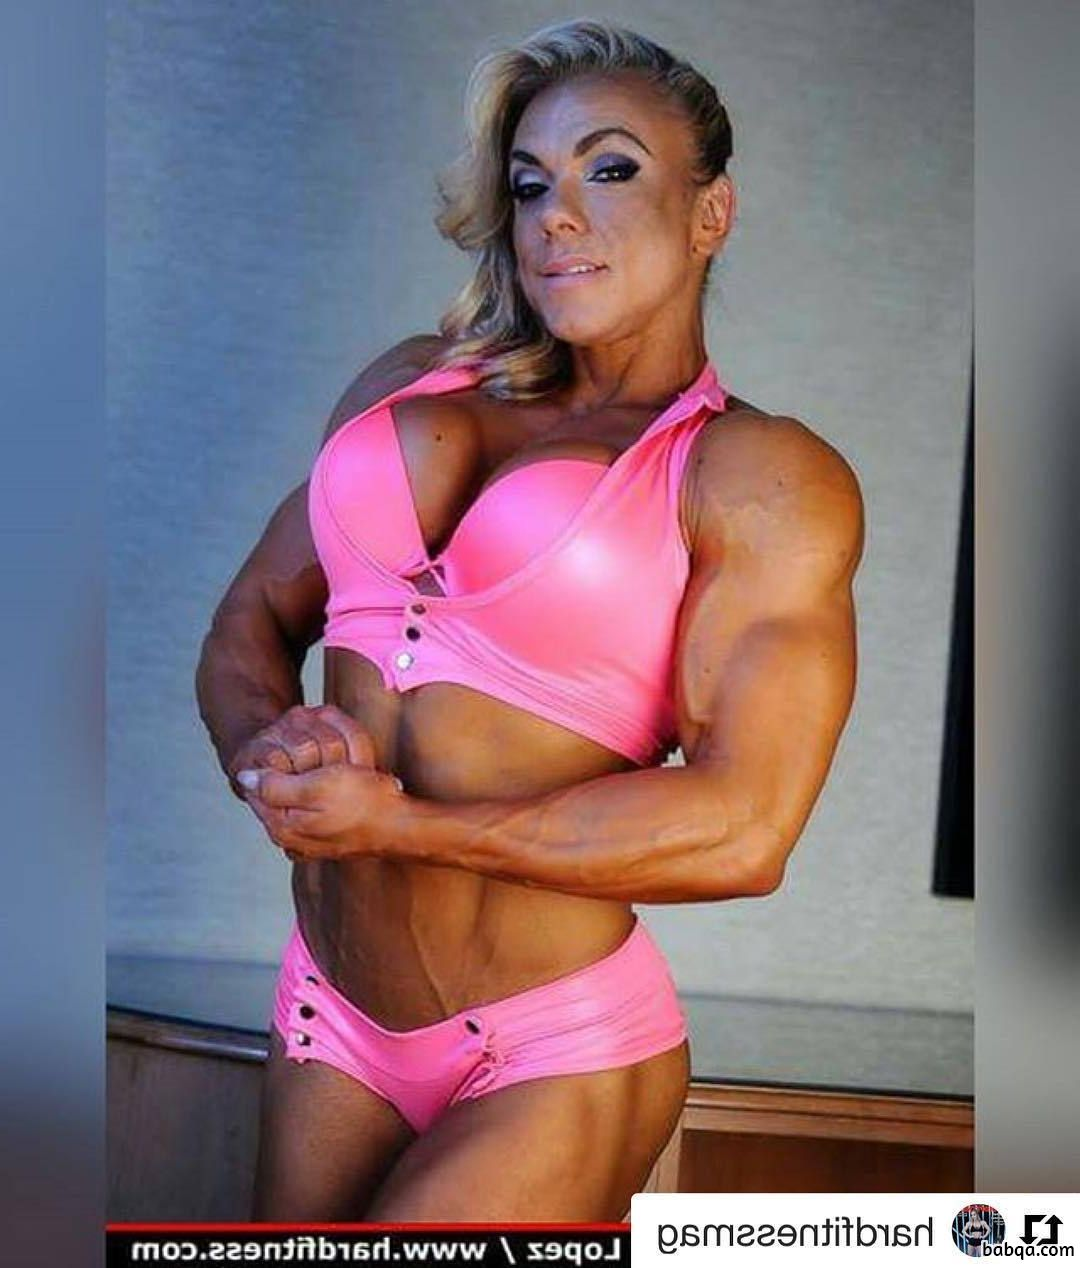 perfect woman with fitness body and muscle bottom picture from linkedin